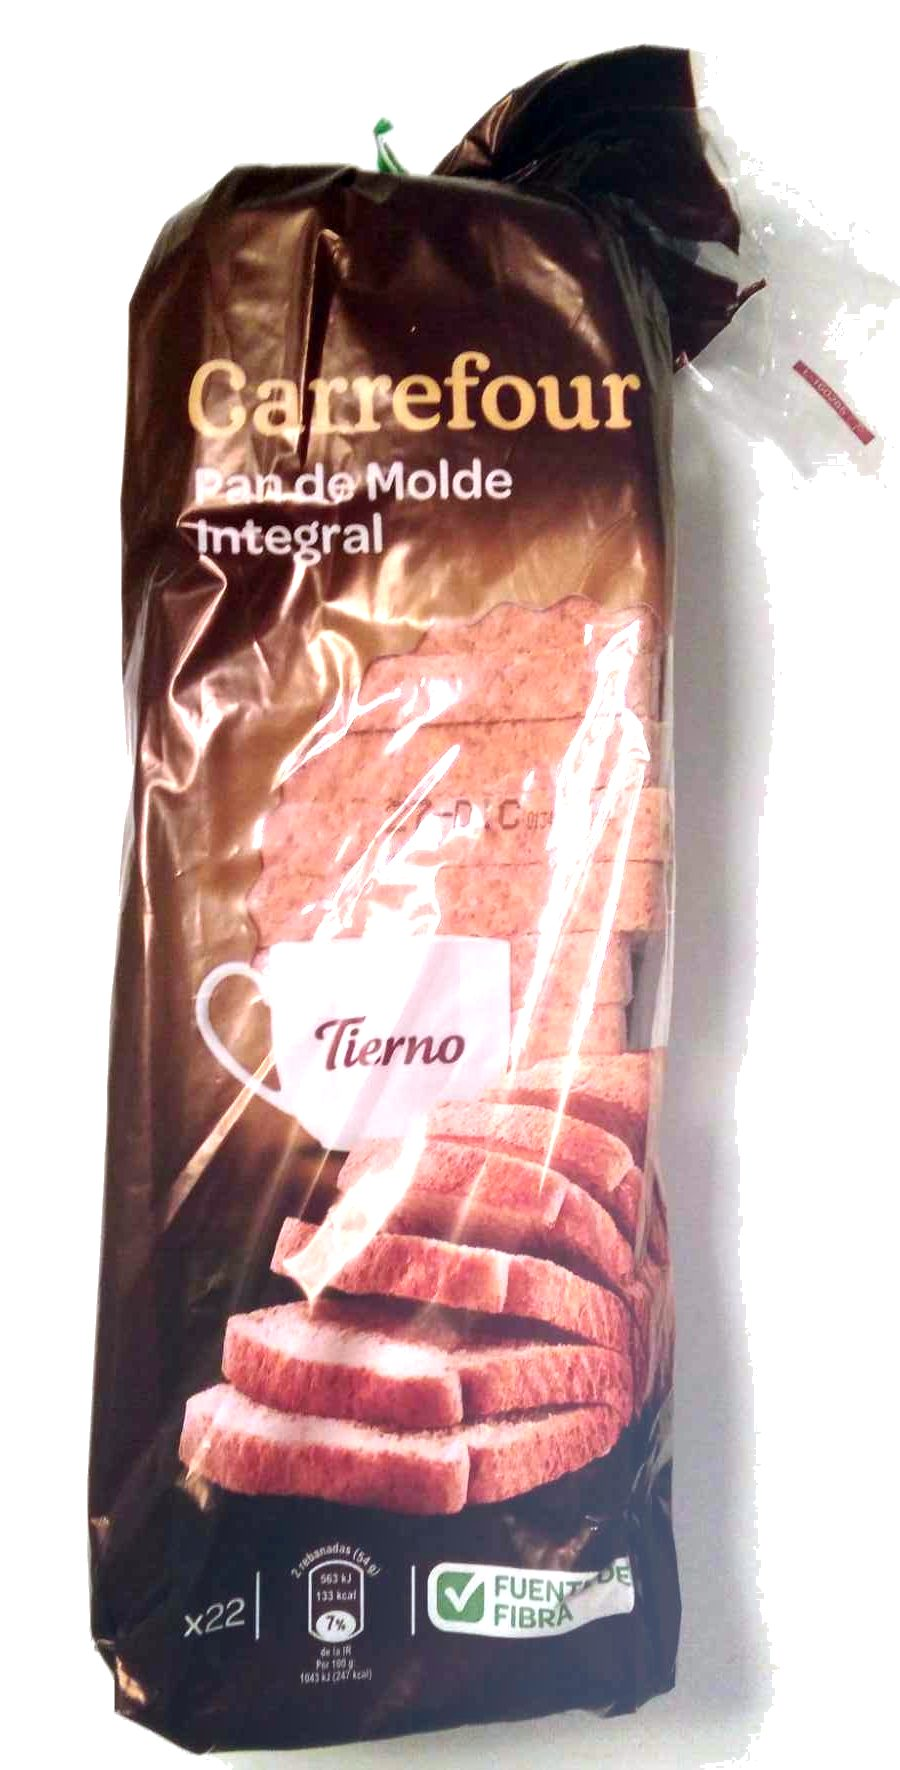 Pan de Molde integraI - Product